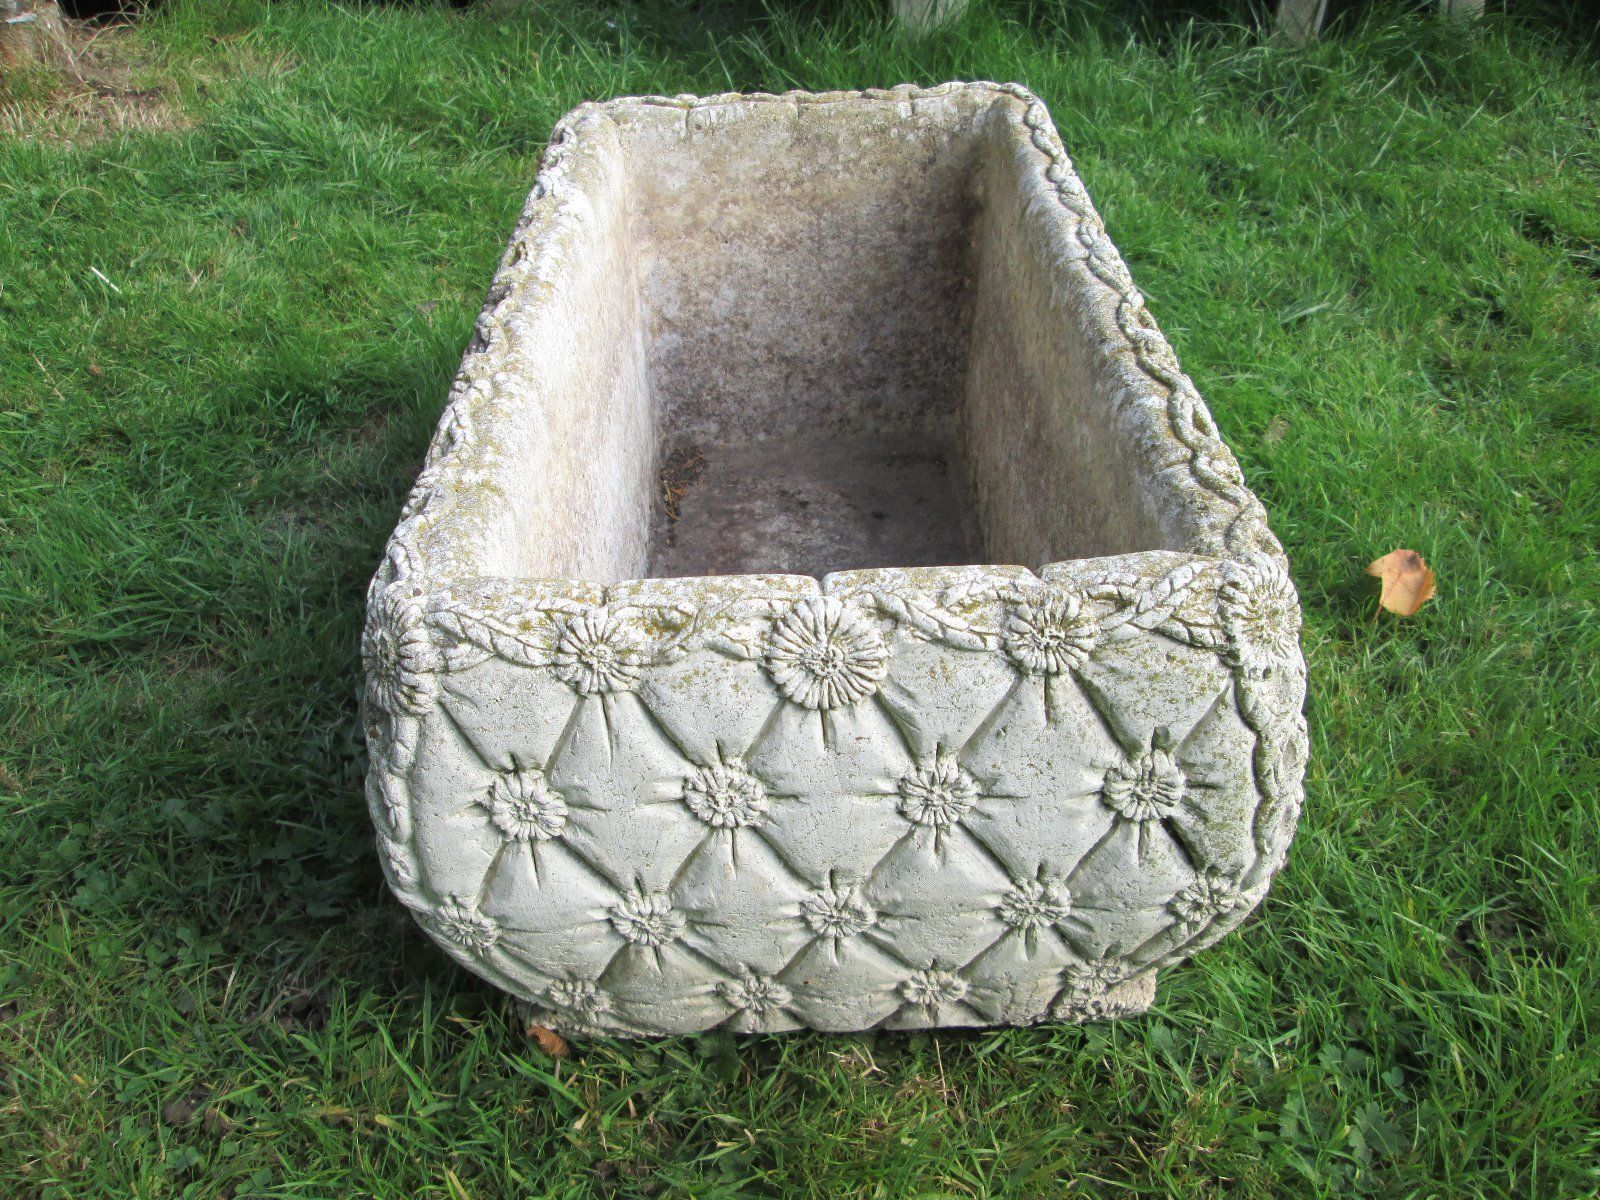 decorative stone/concrete garden trough/planter - handbag/material